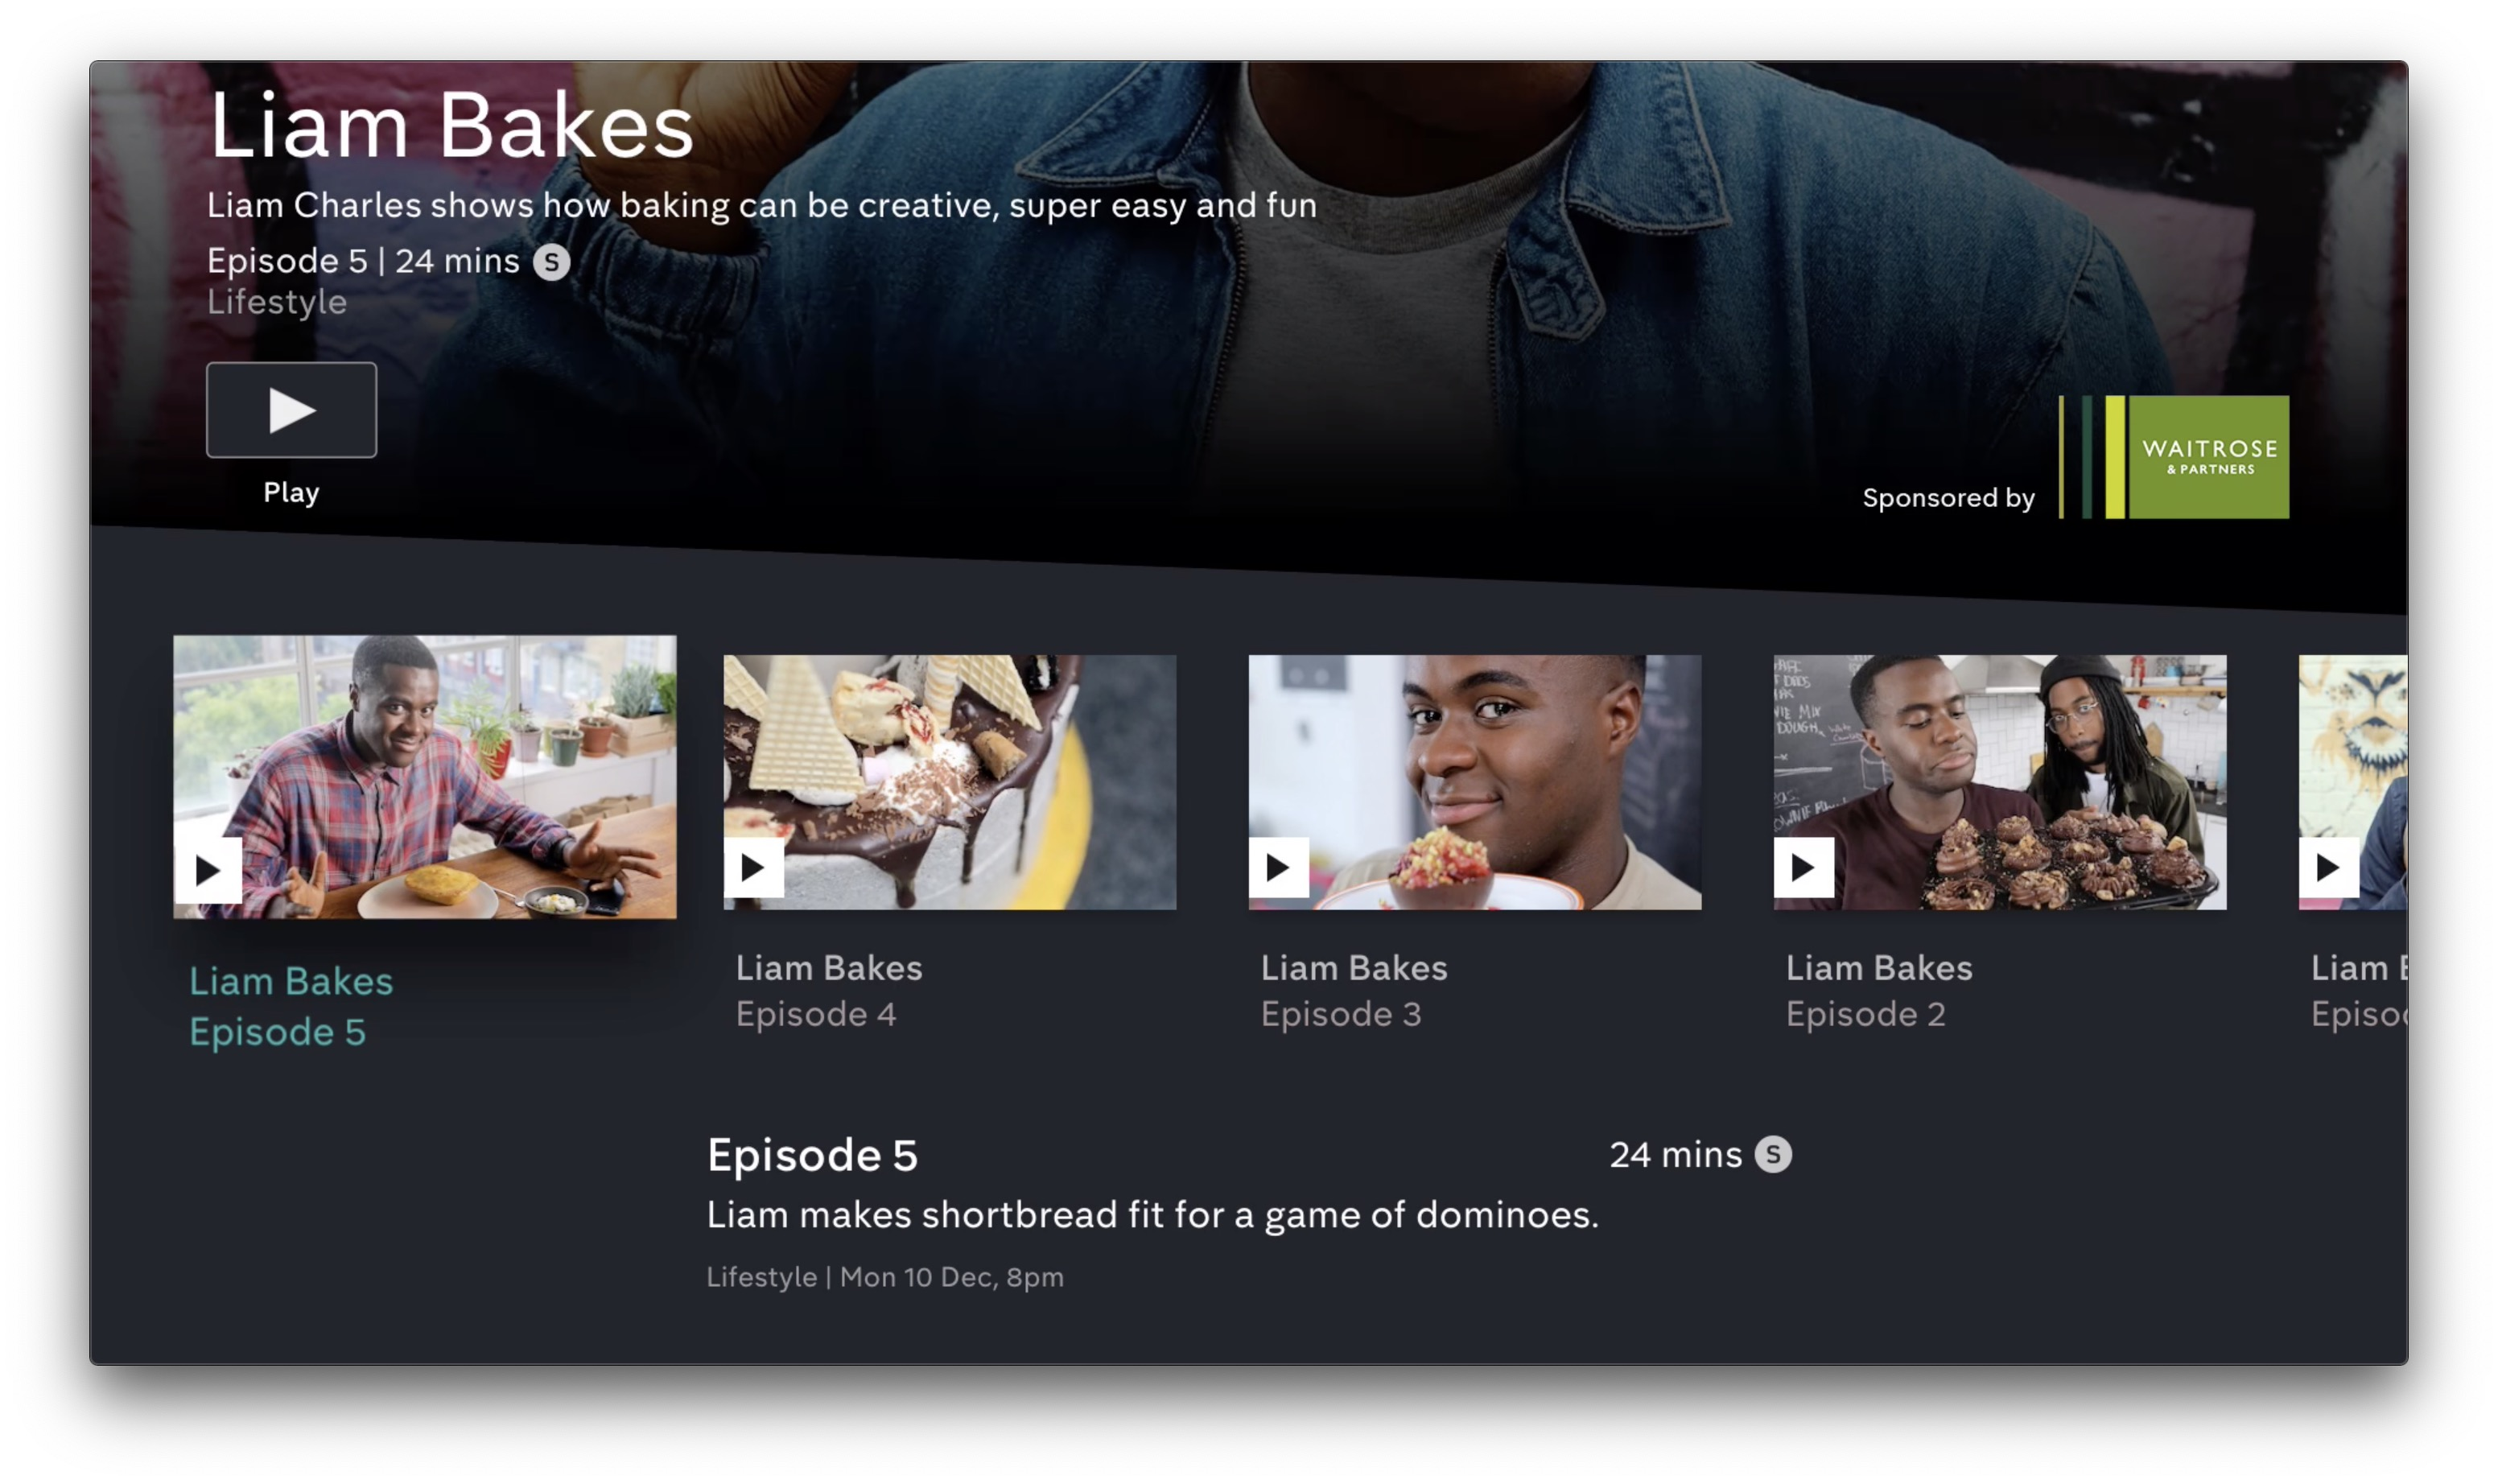 Channel 4 shows finally available on Apple TV in the UK with